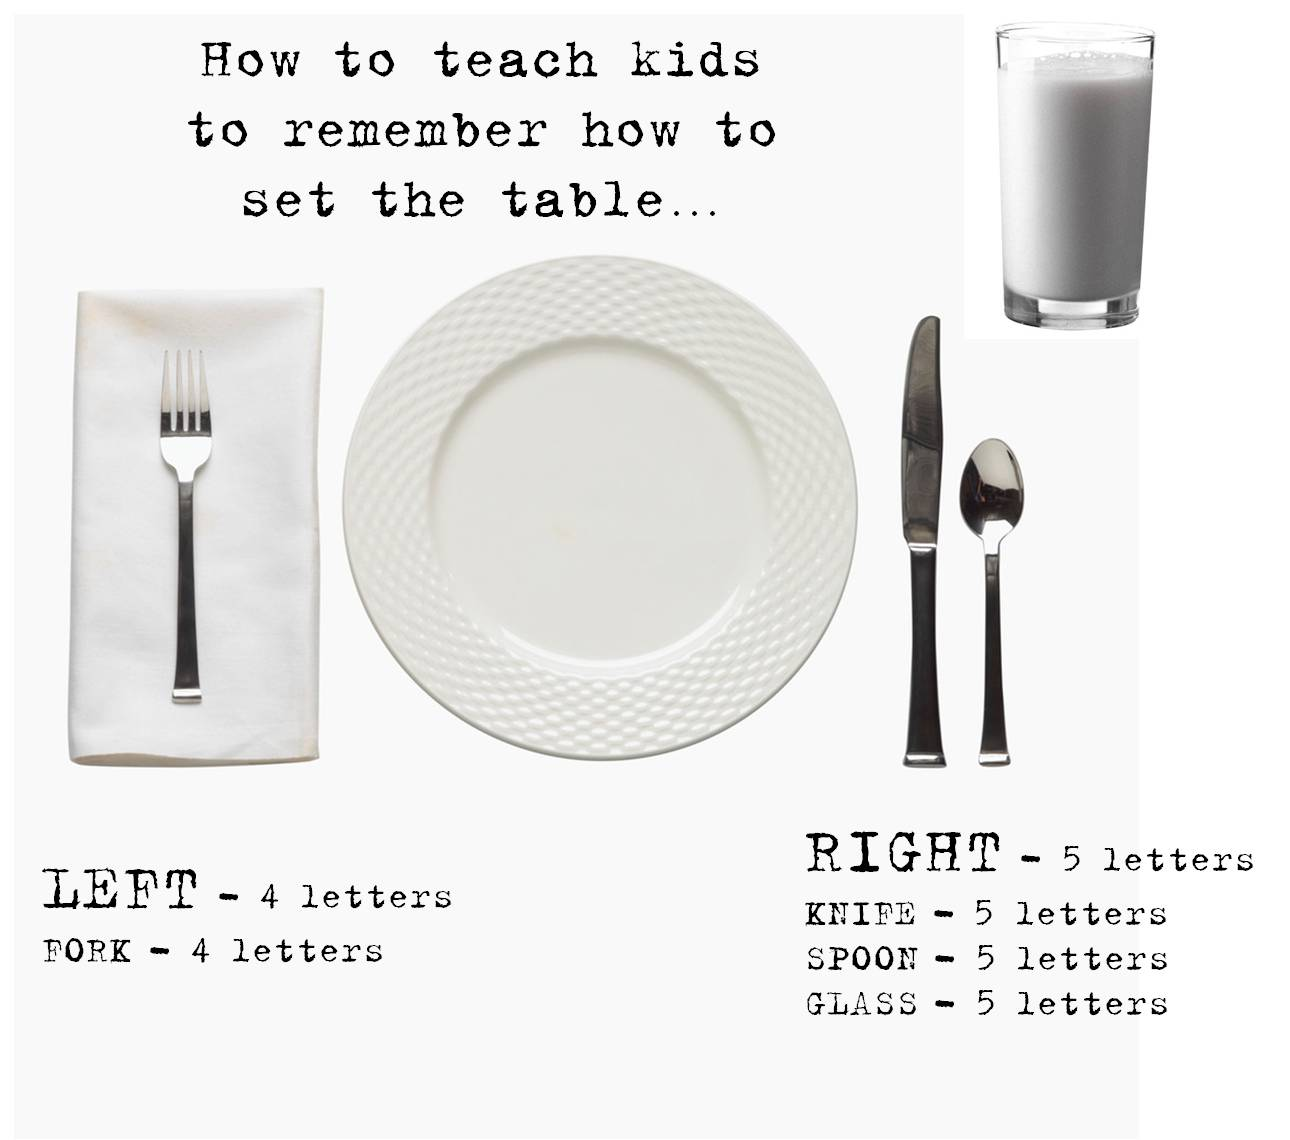 How To Set Table Strong Armor Teaching Kids How To Set The Table